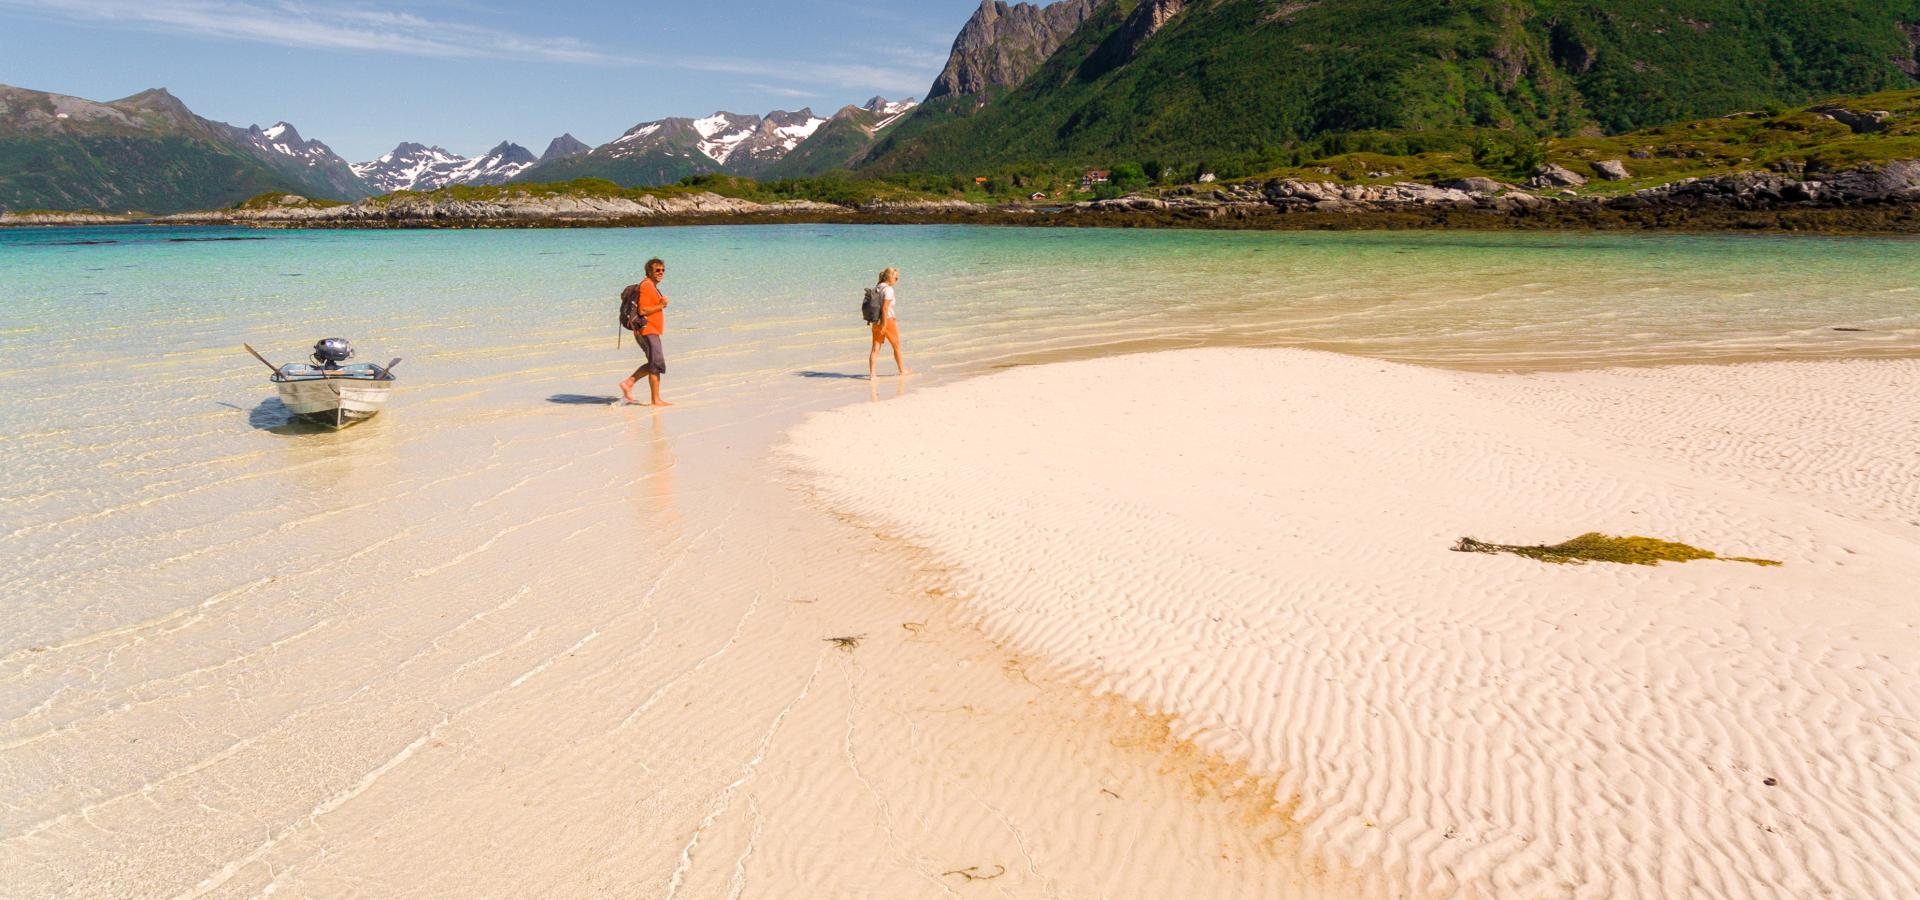 Couple arriving paradise beach in Lofoten